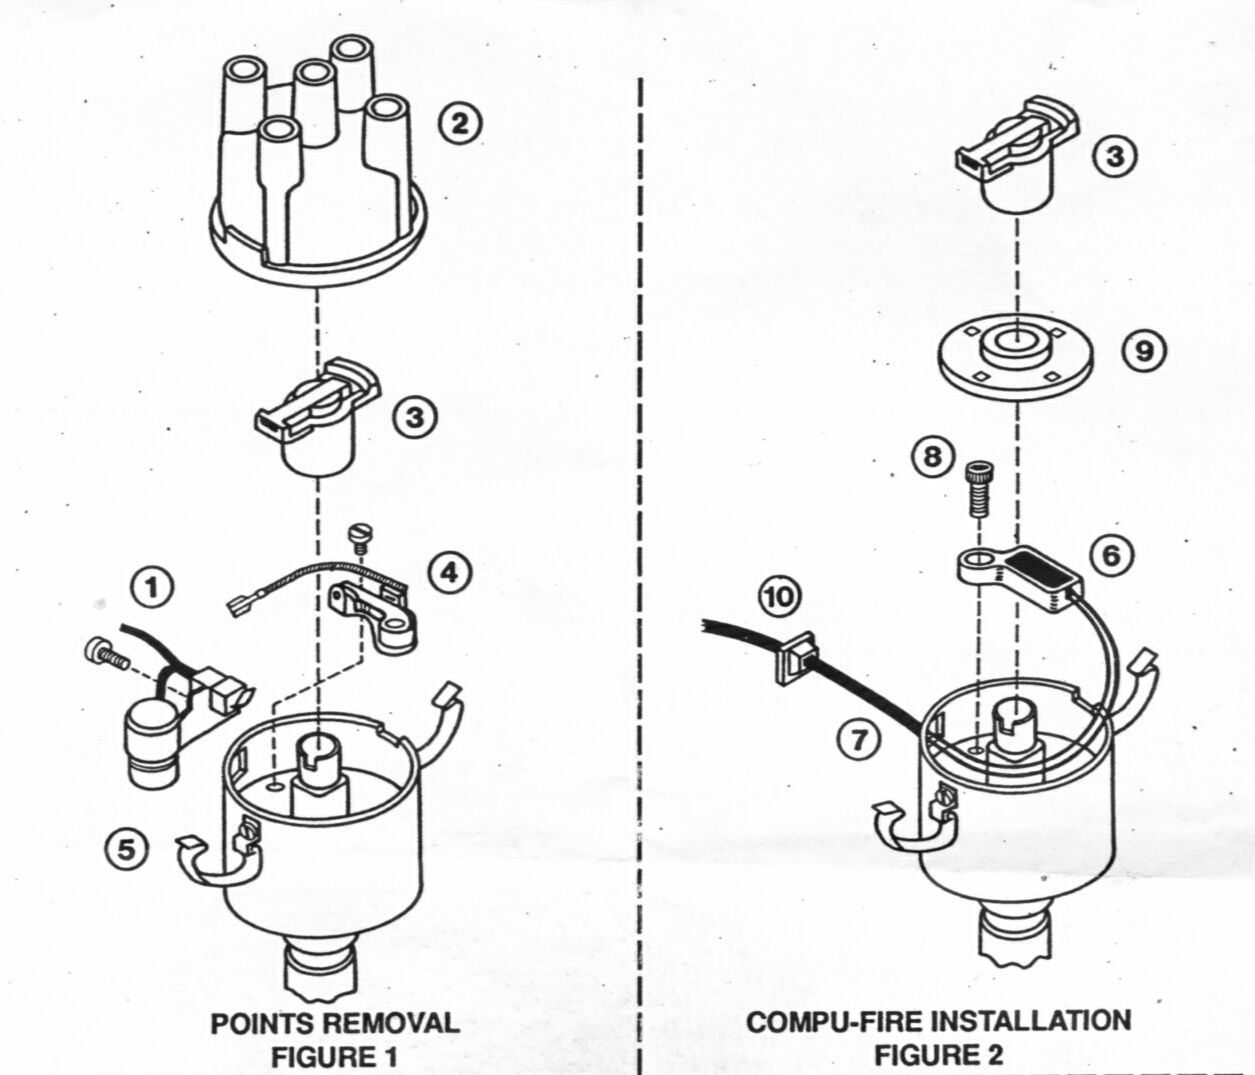 vw distributor diagram free download  u2022 oasis